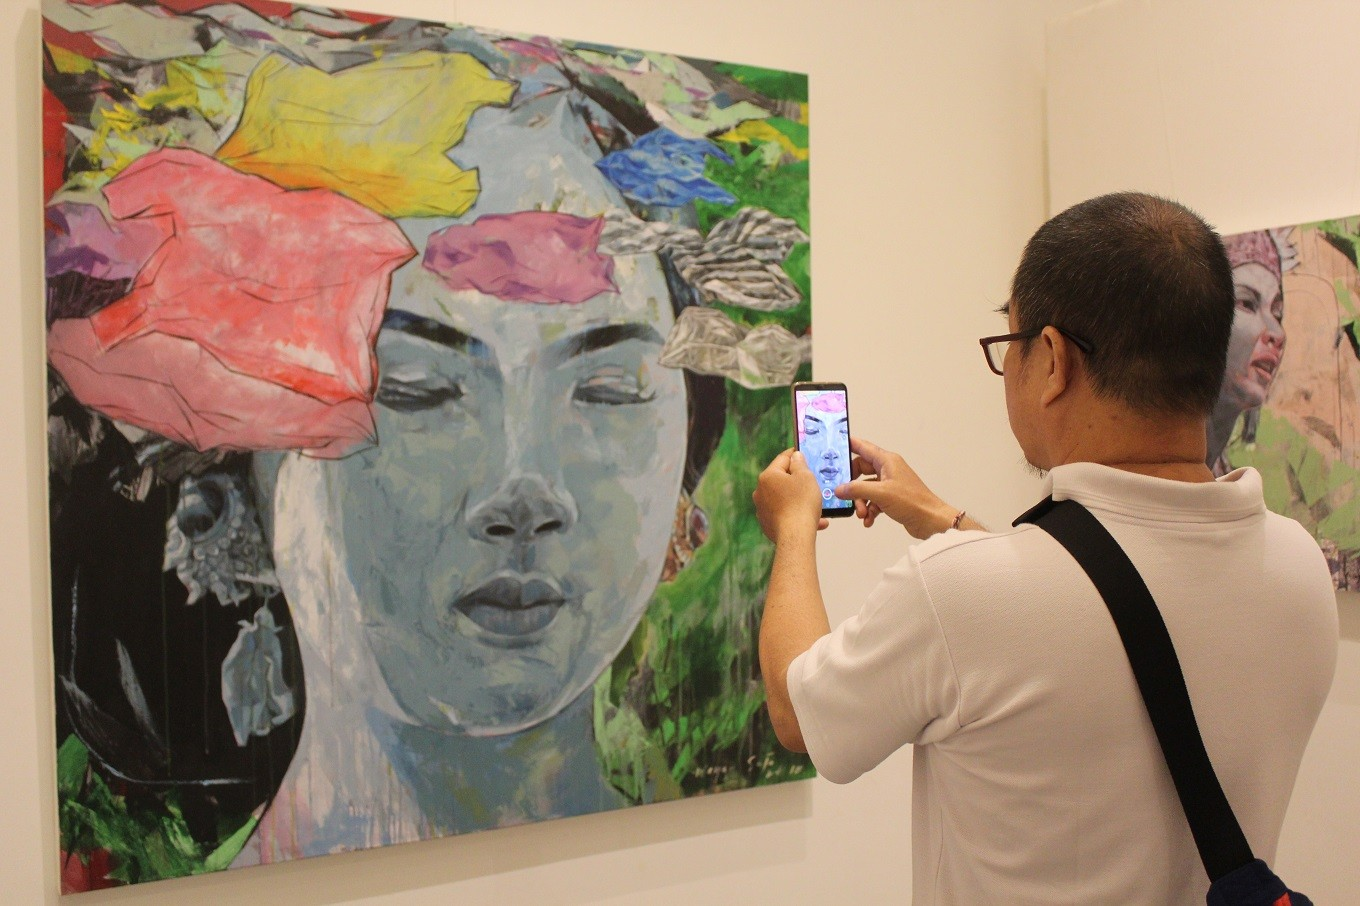 A visitor with a smartphone engages with works by Wayan Suja.